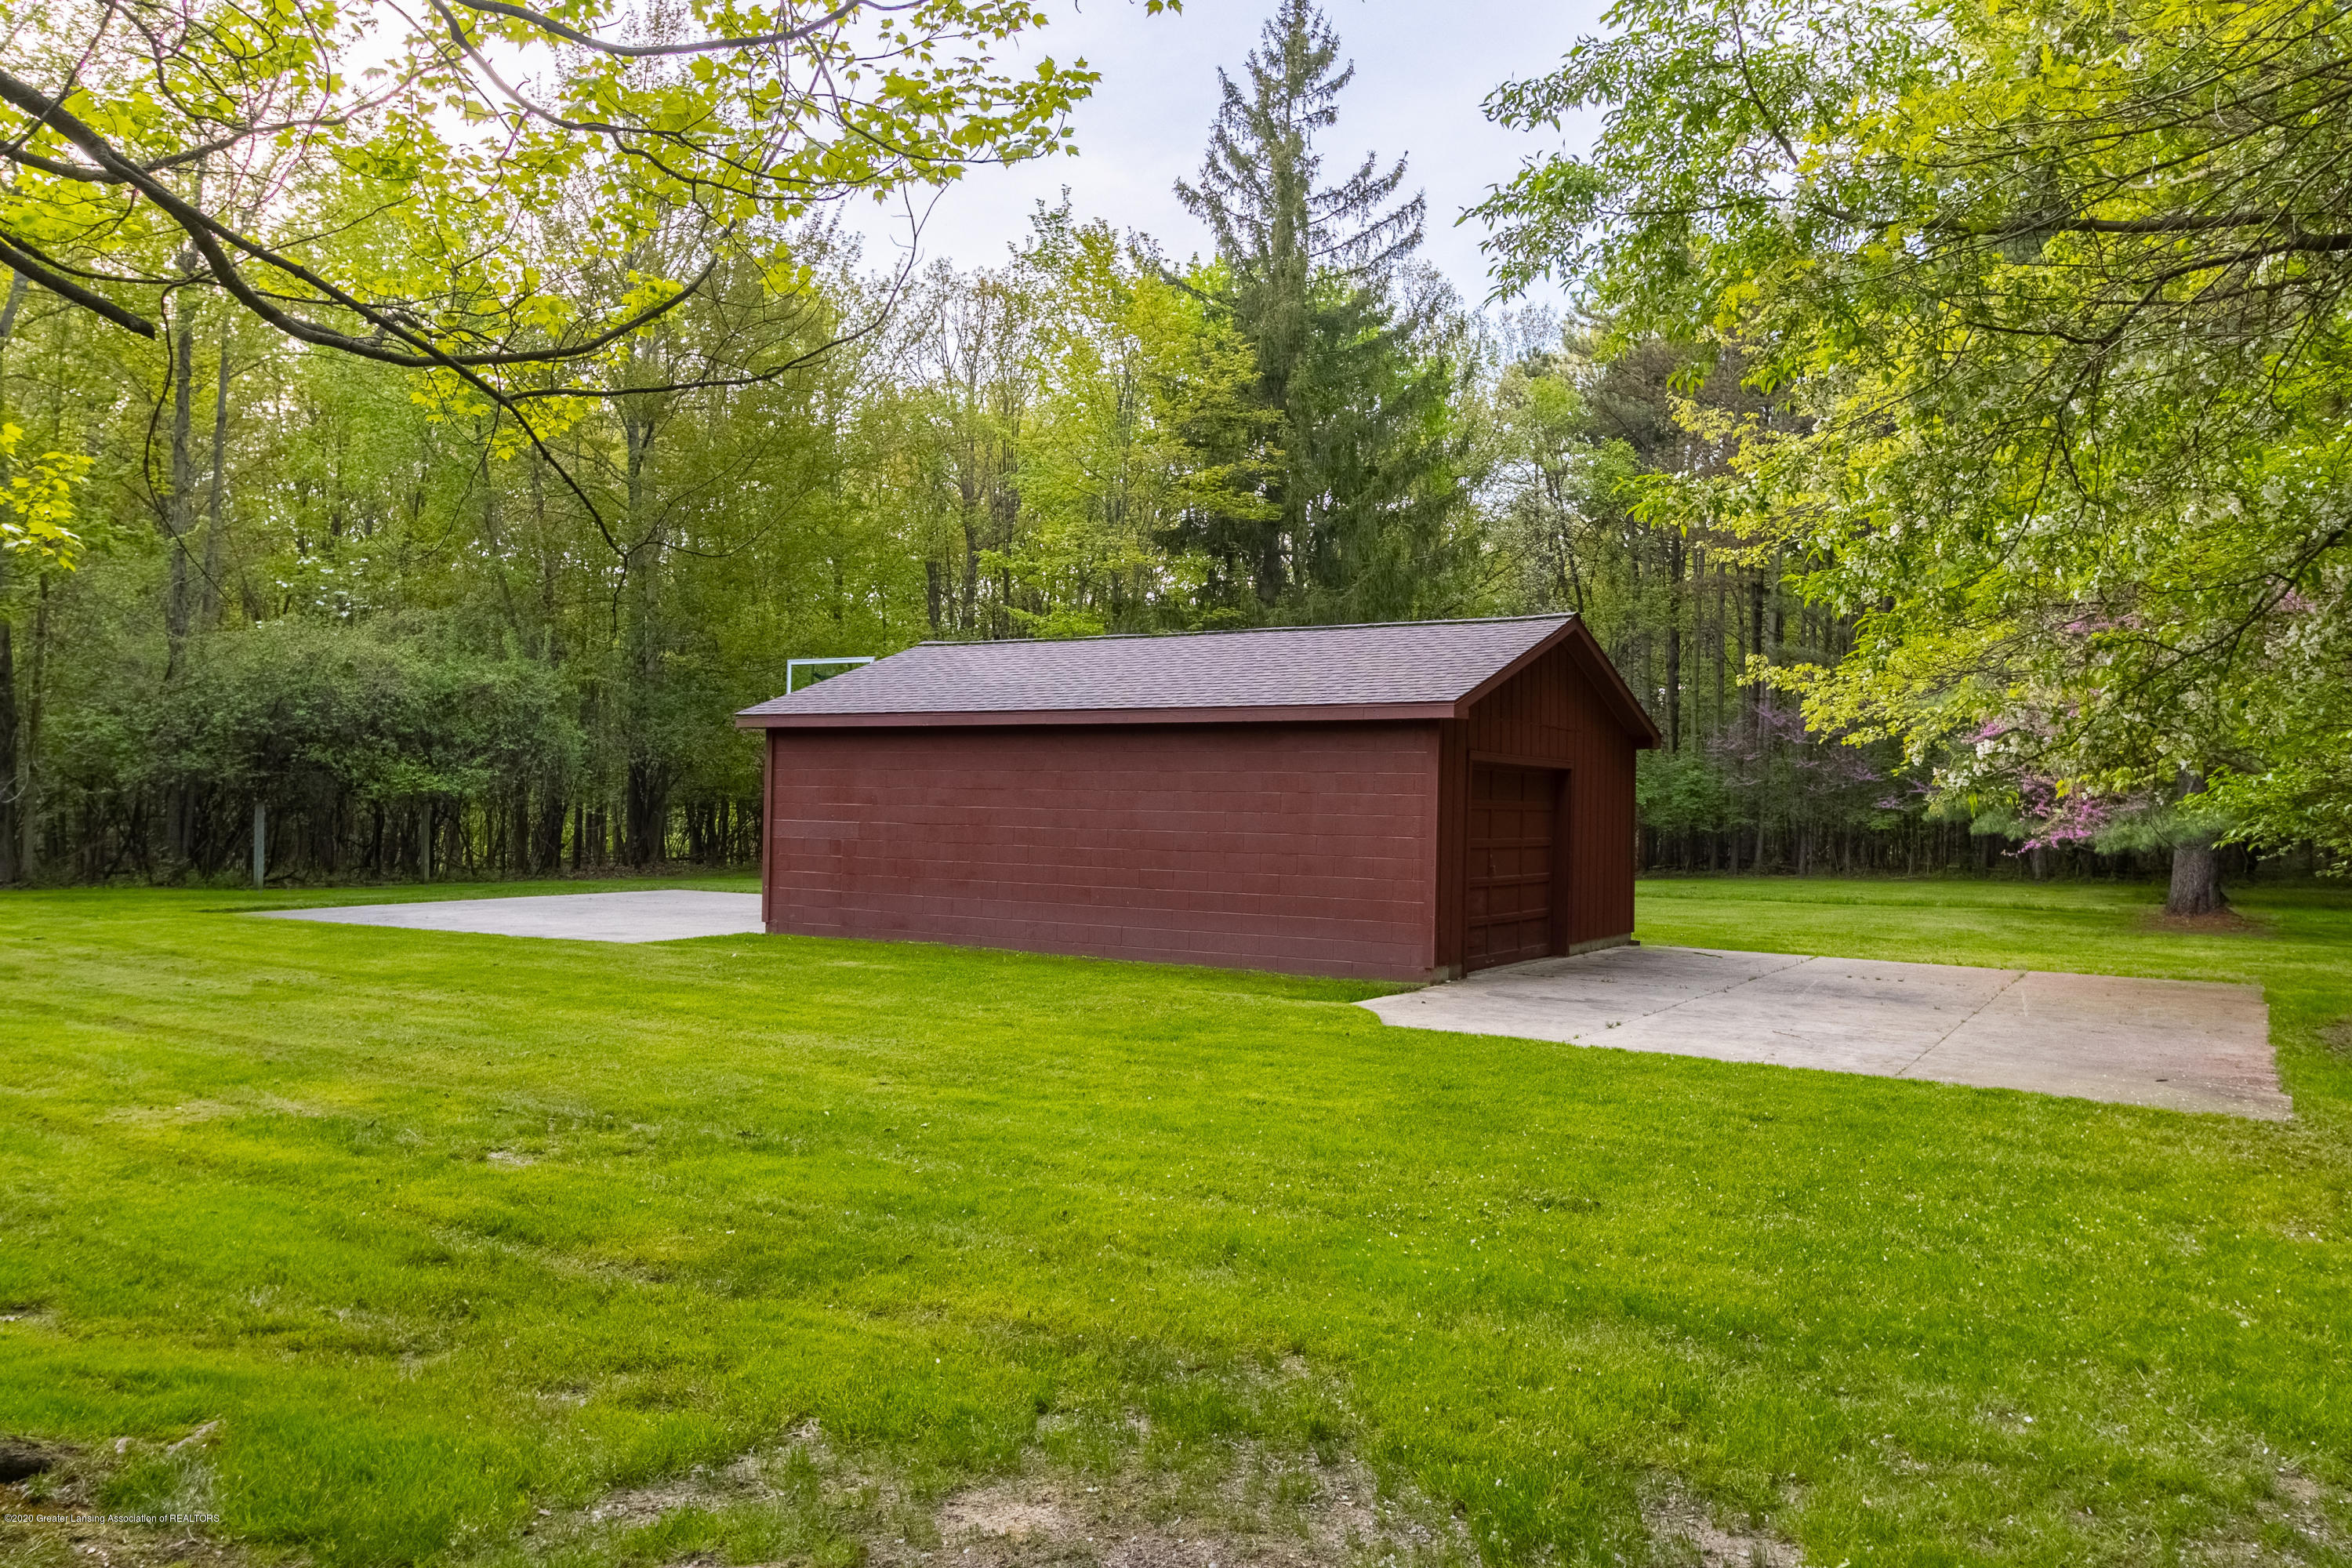 1172 Wrightwind Dr - Shed - 80